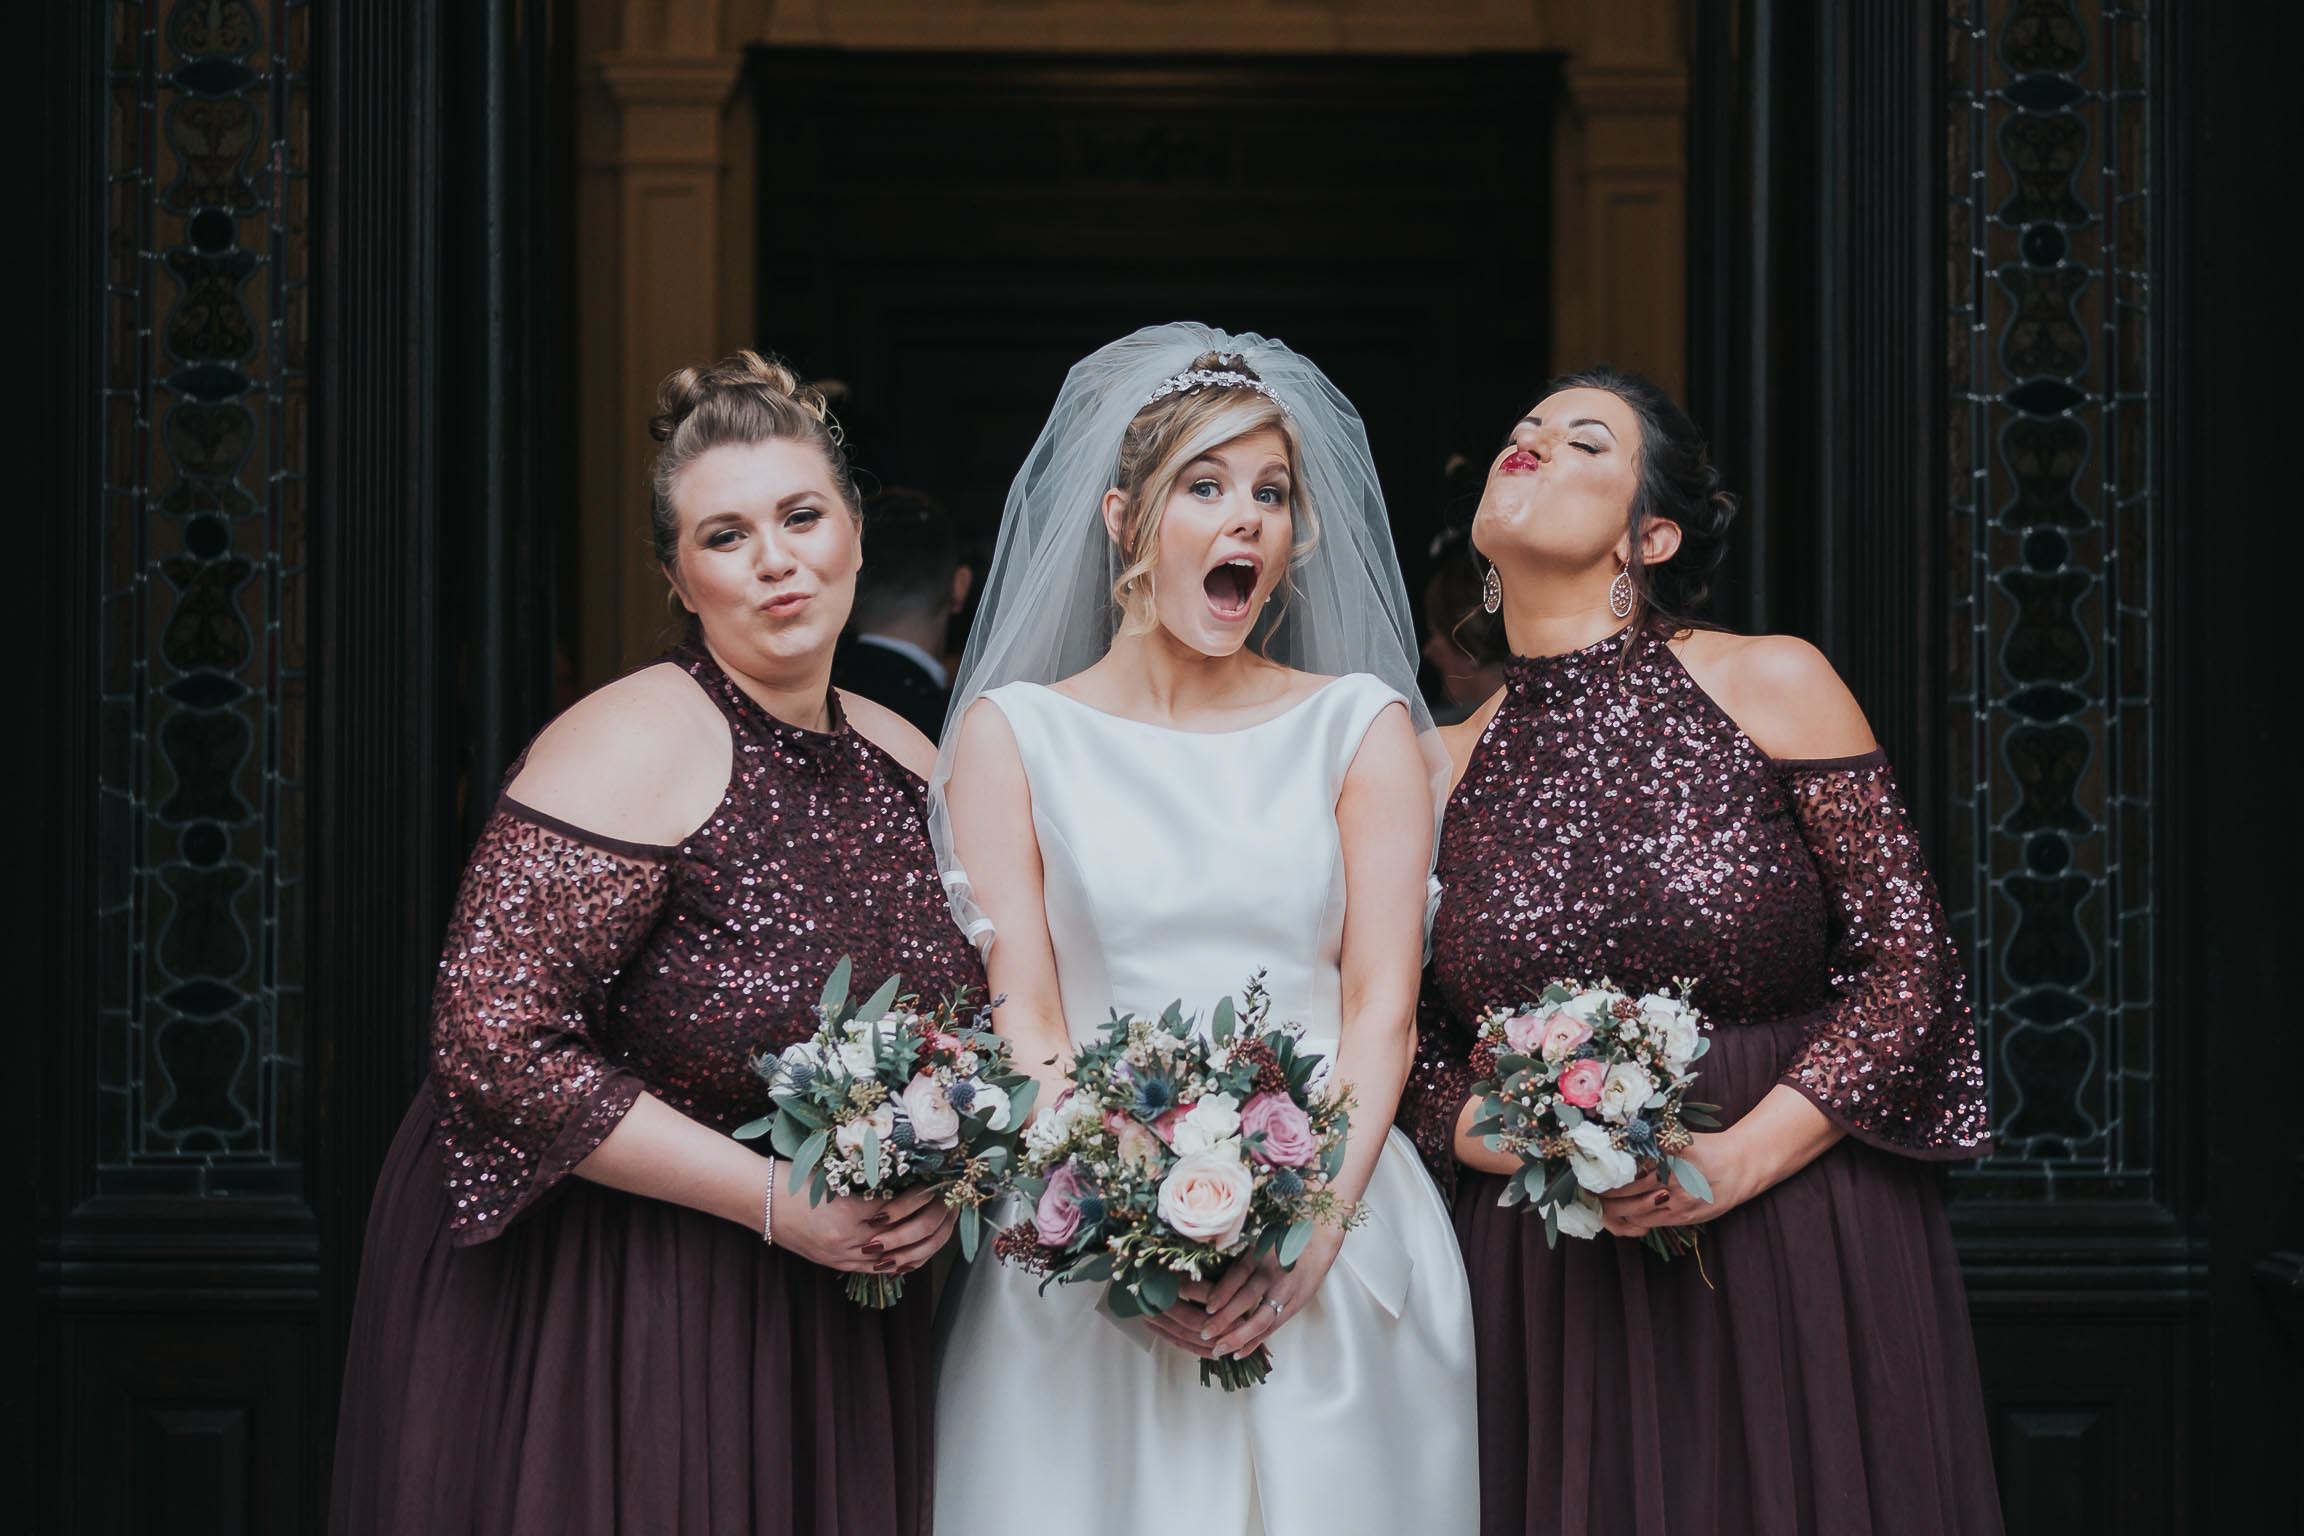 the bride and bridesmaids during their wedding day making funny faces